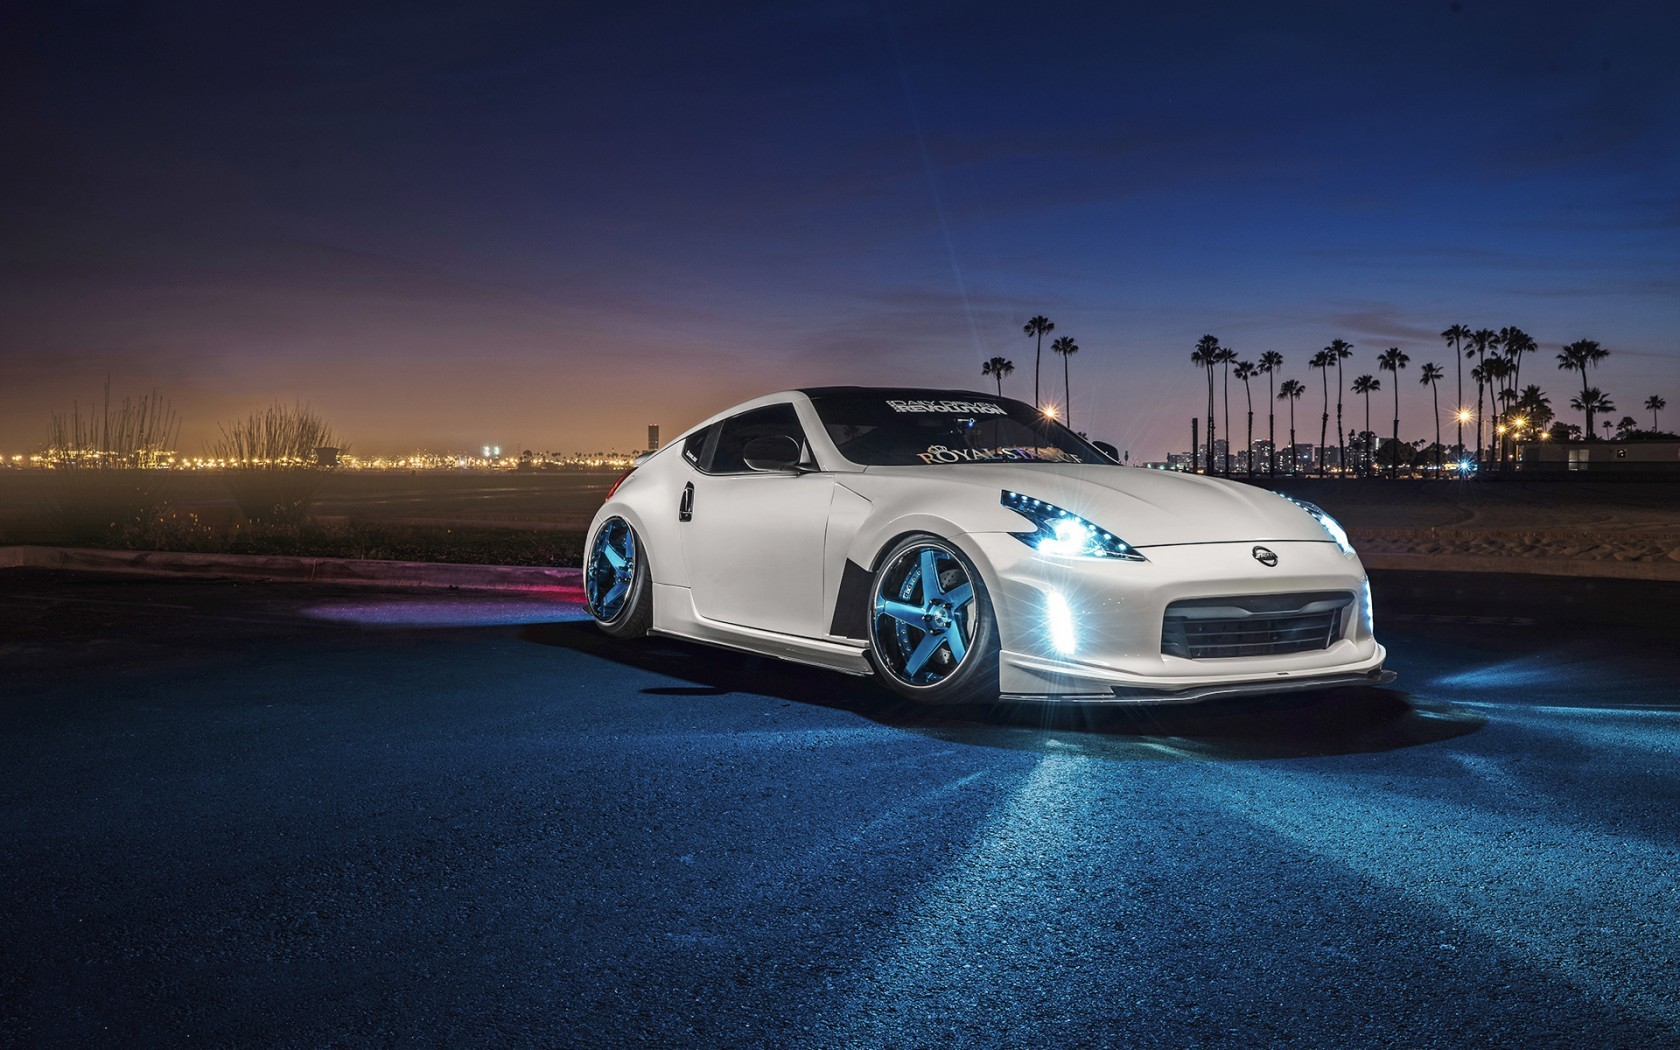 Super Car 5760x1080 Wallpaper Nissan Car Night Sports Car Nissan 370z White Cars